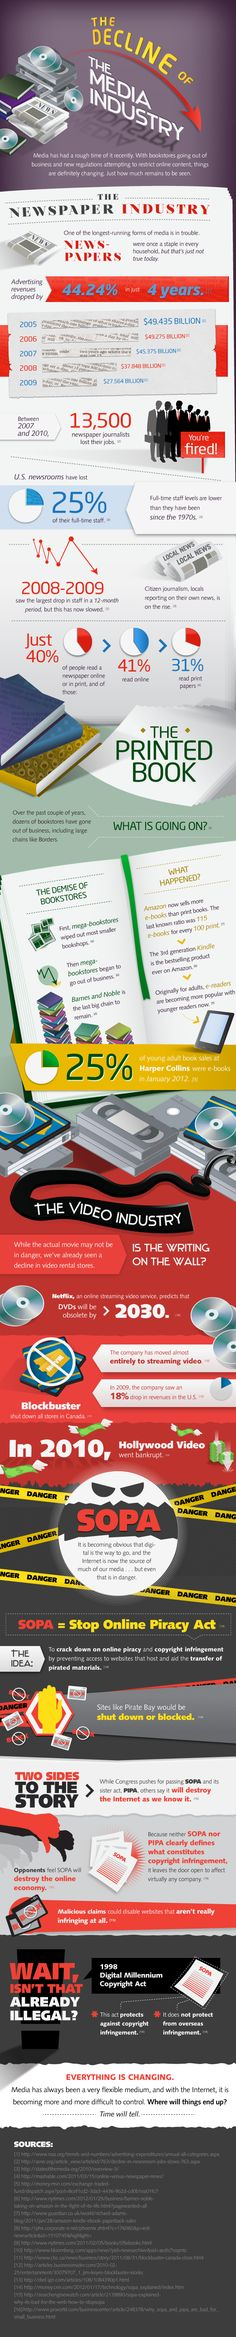 The Decline of Traditional Media Industry